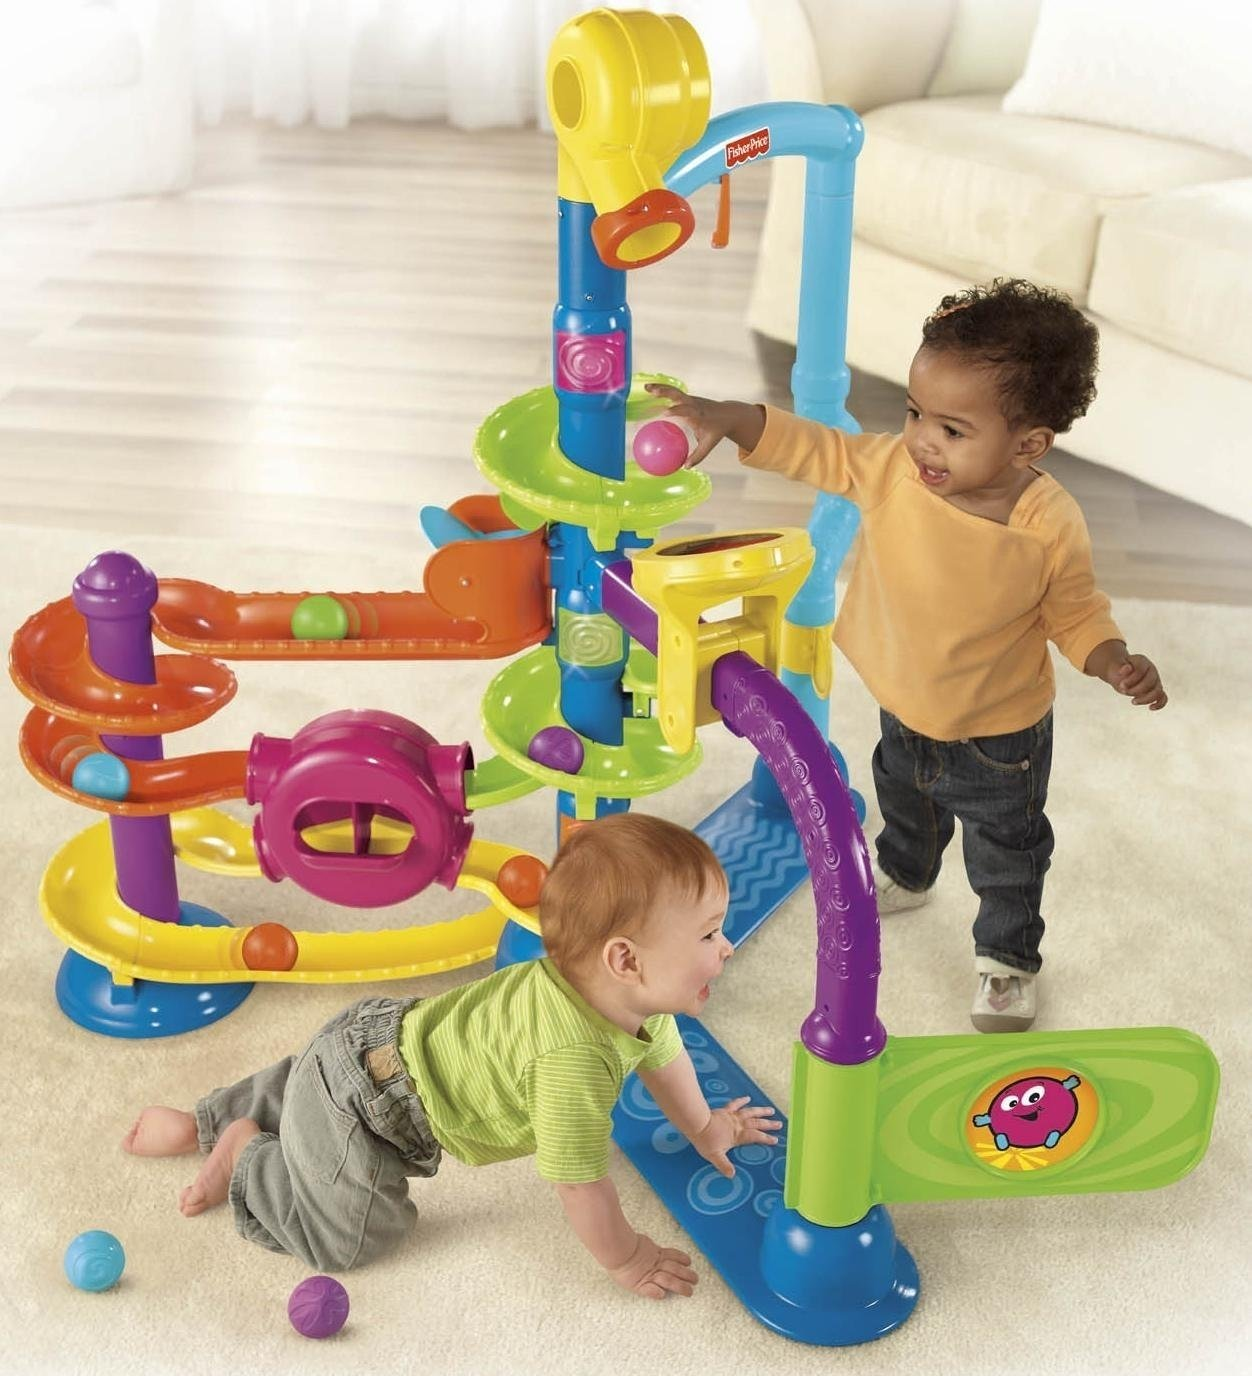 10 Fantastic Gift Ideas For 1 Year Old Boy best gifts ideas for one year old boys first birthday 5 2020